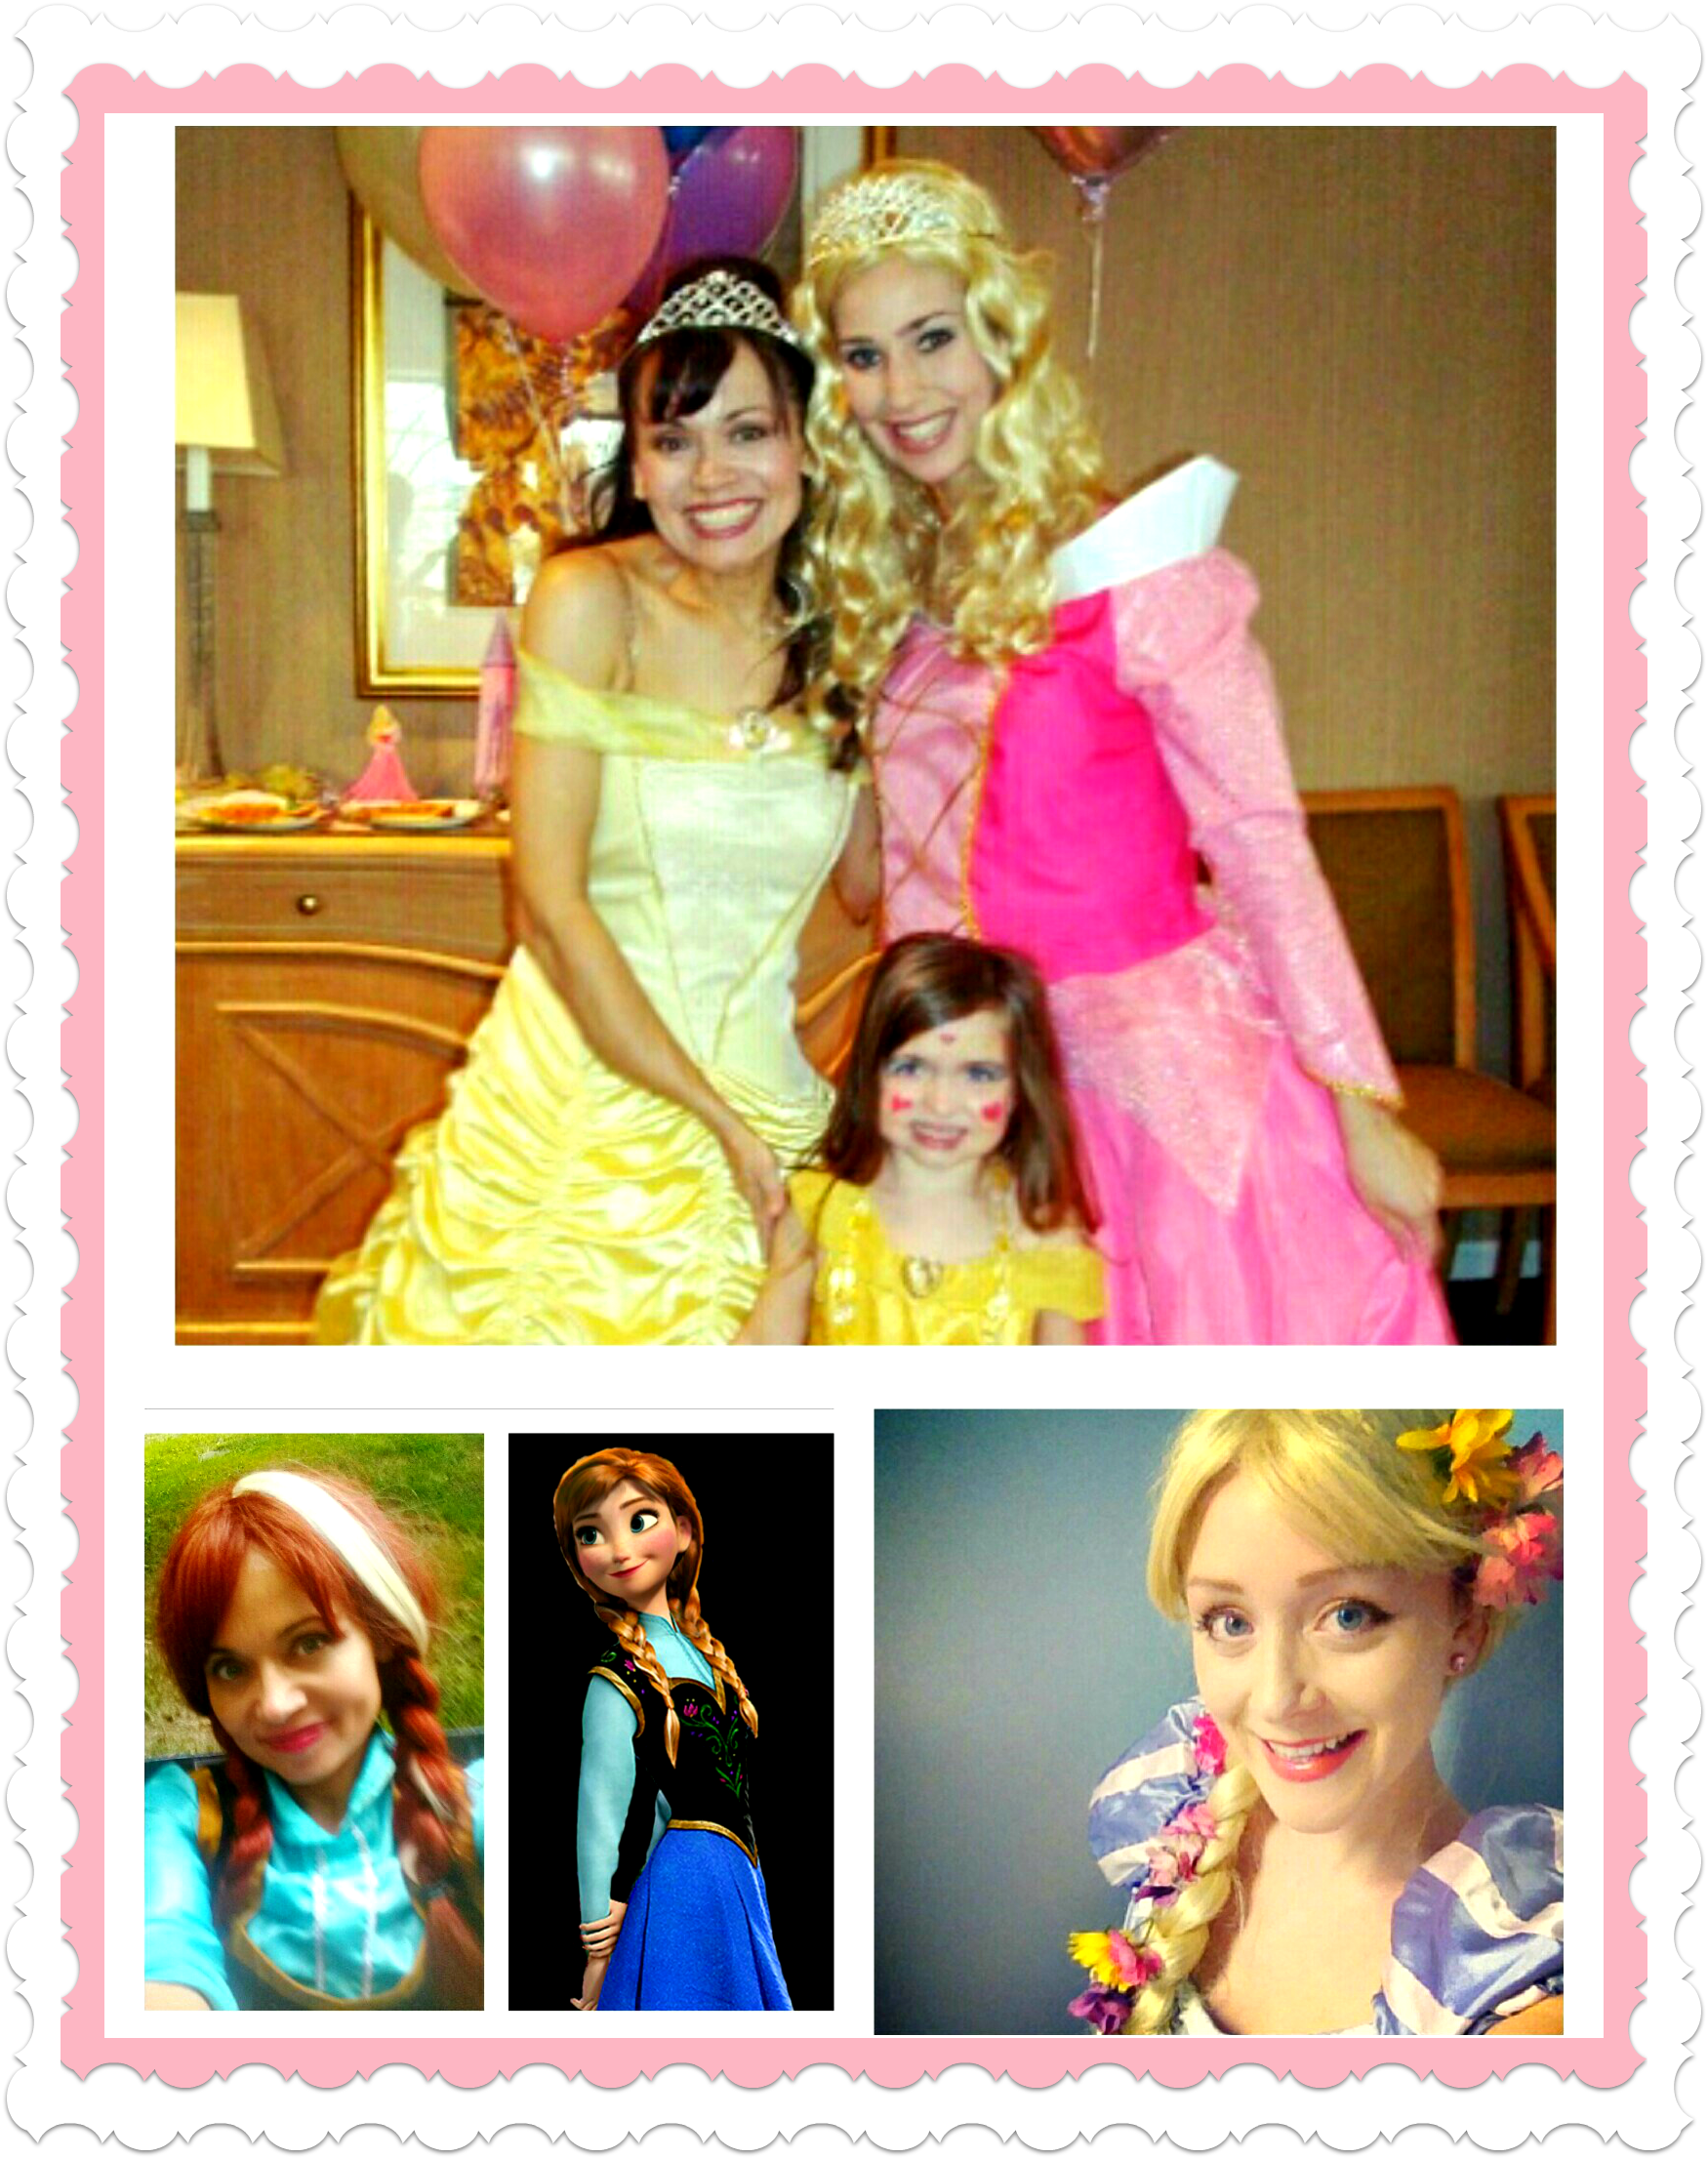 Pretty princesses, Elsa, Little Mermaid, Belle, Sleeping Beauty Children's party entertainment, face painting, balloonists, NYC Manhattan